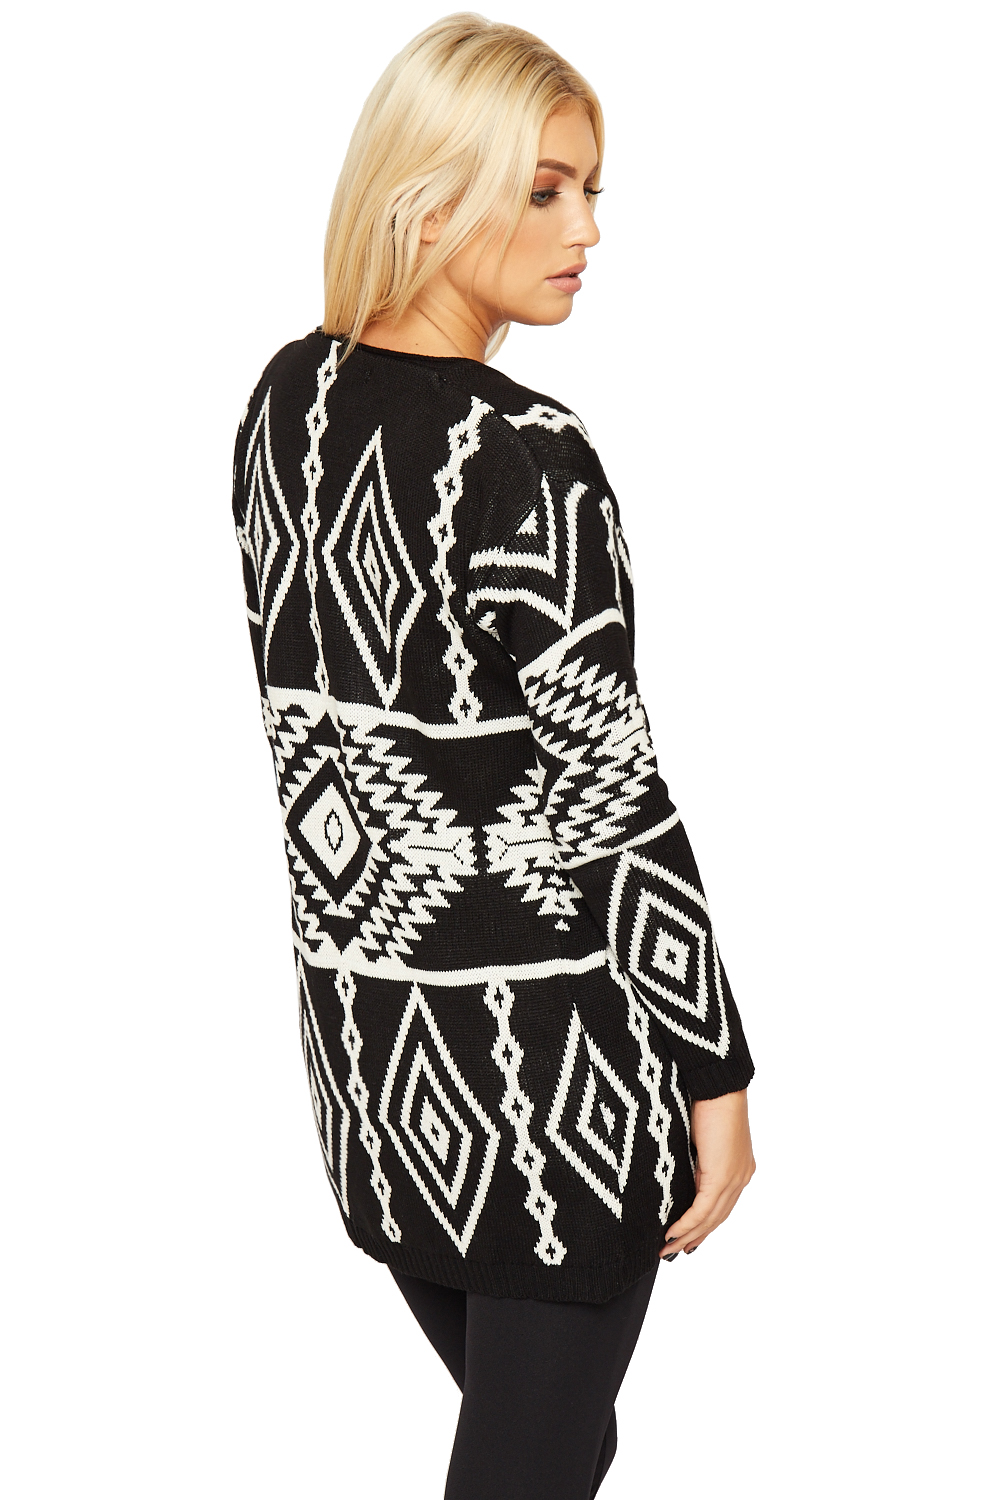 Gianni Bini Sweater Size XS Blush Pink Aztec Tribal Geo Print NWT *NOTE: Sweater photographed a darker nude color, see close up photo of print for actual color. It is a light blush pink. Thank you for.